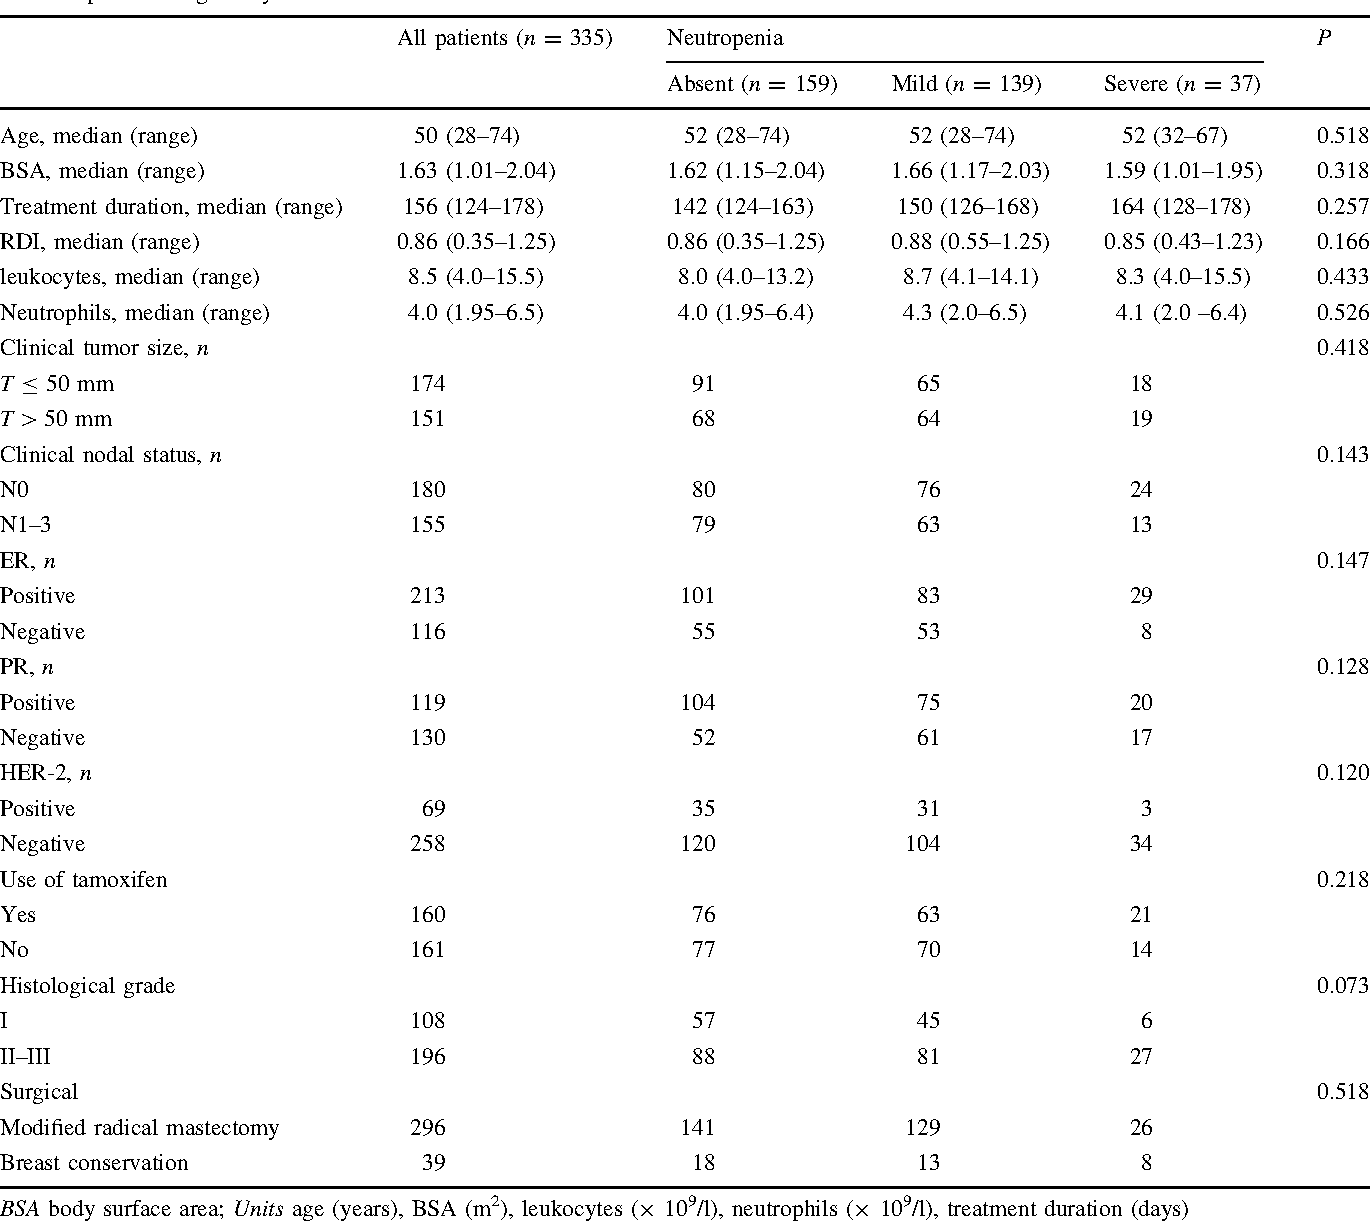 Table 1 Baseline demographics and clinical/hematologic characteristics in all patients and in subgroups stratified according to the worst grade of neutropenia during six cycles